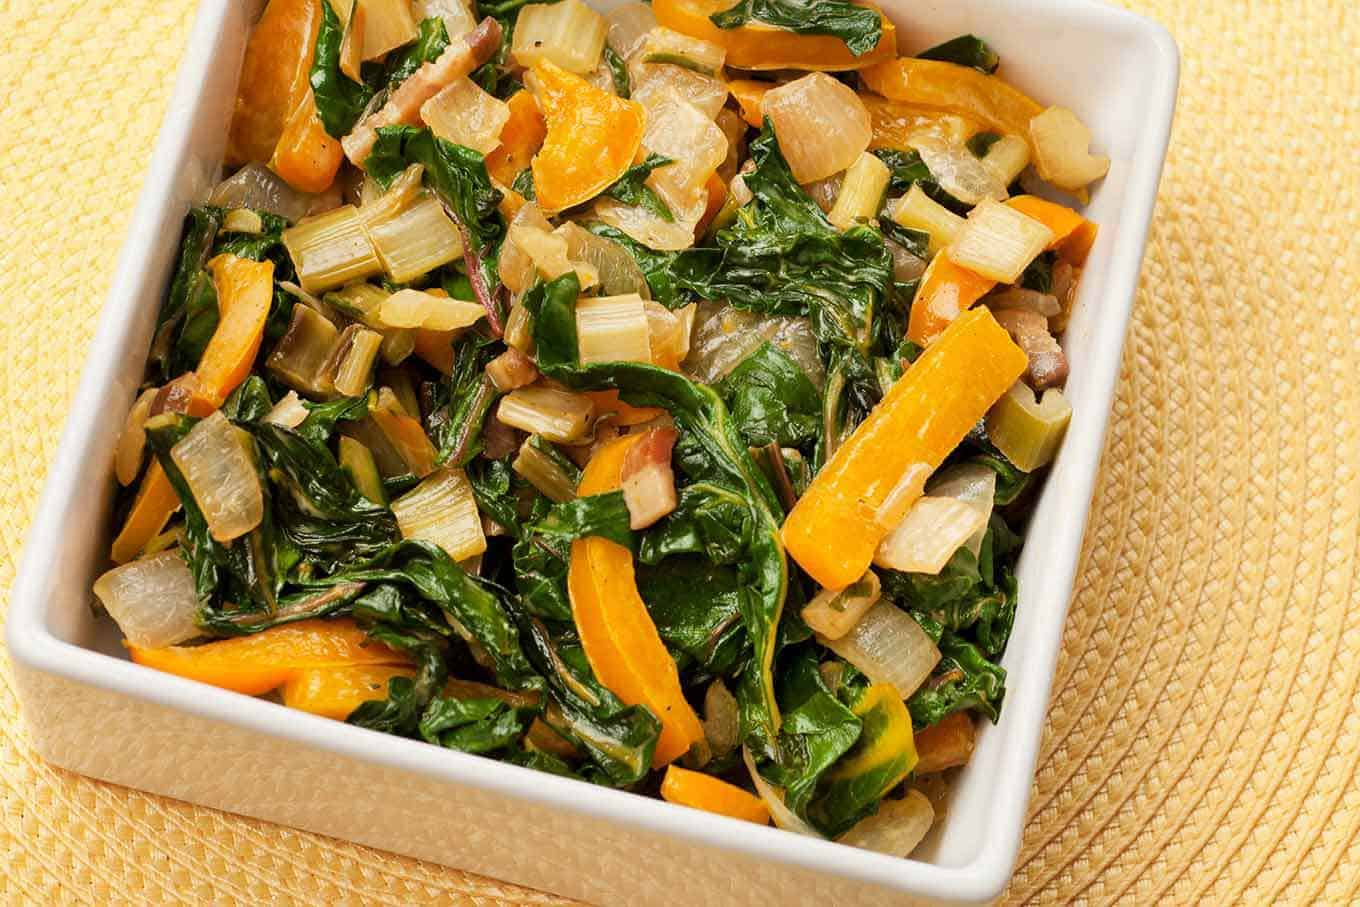 Creamy Swiss Chard and Bell Pepper Medley